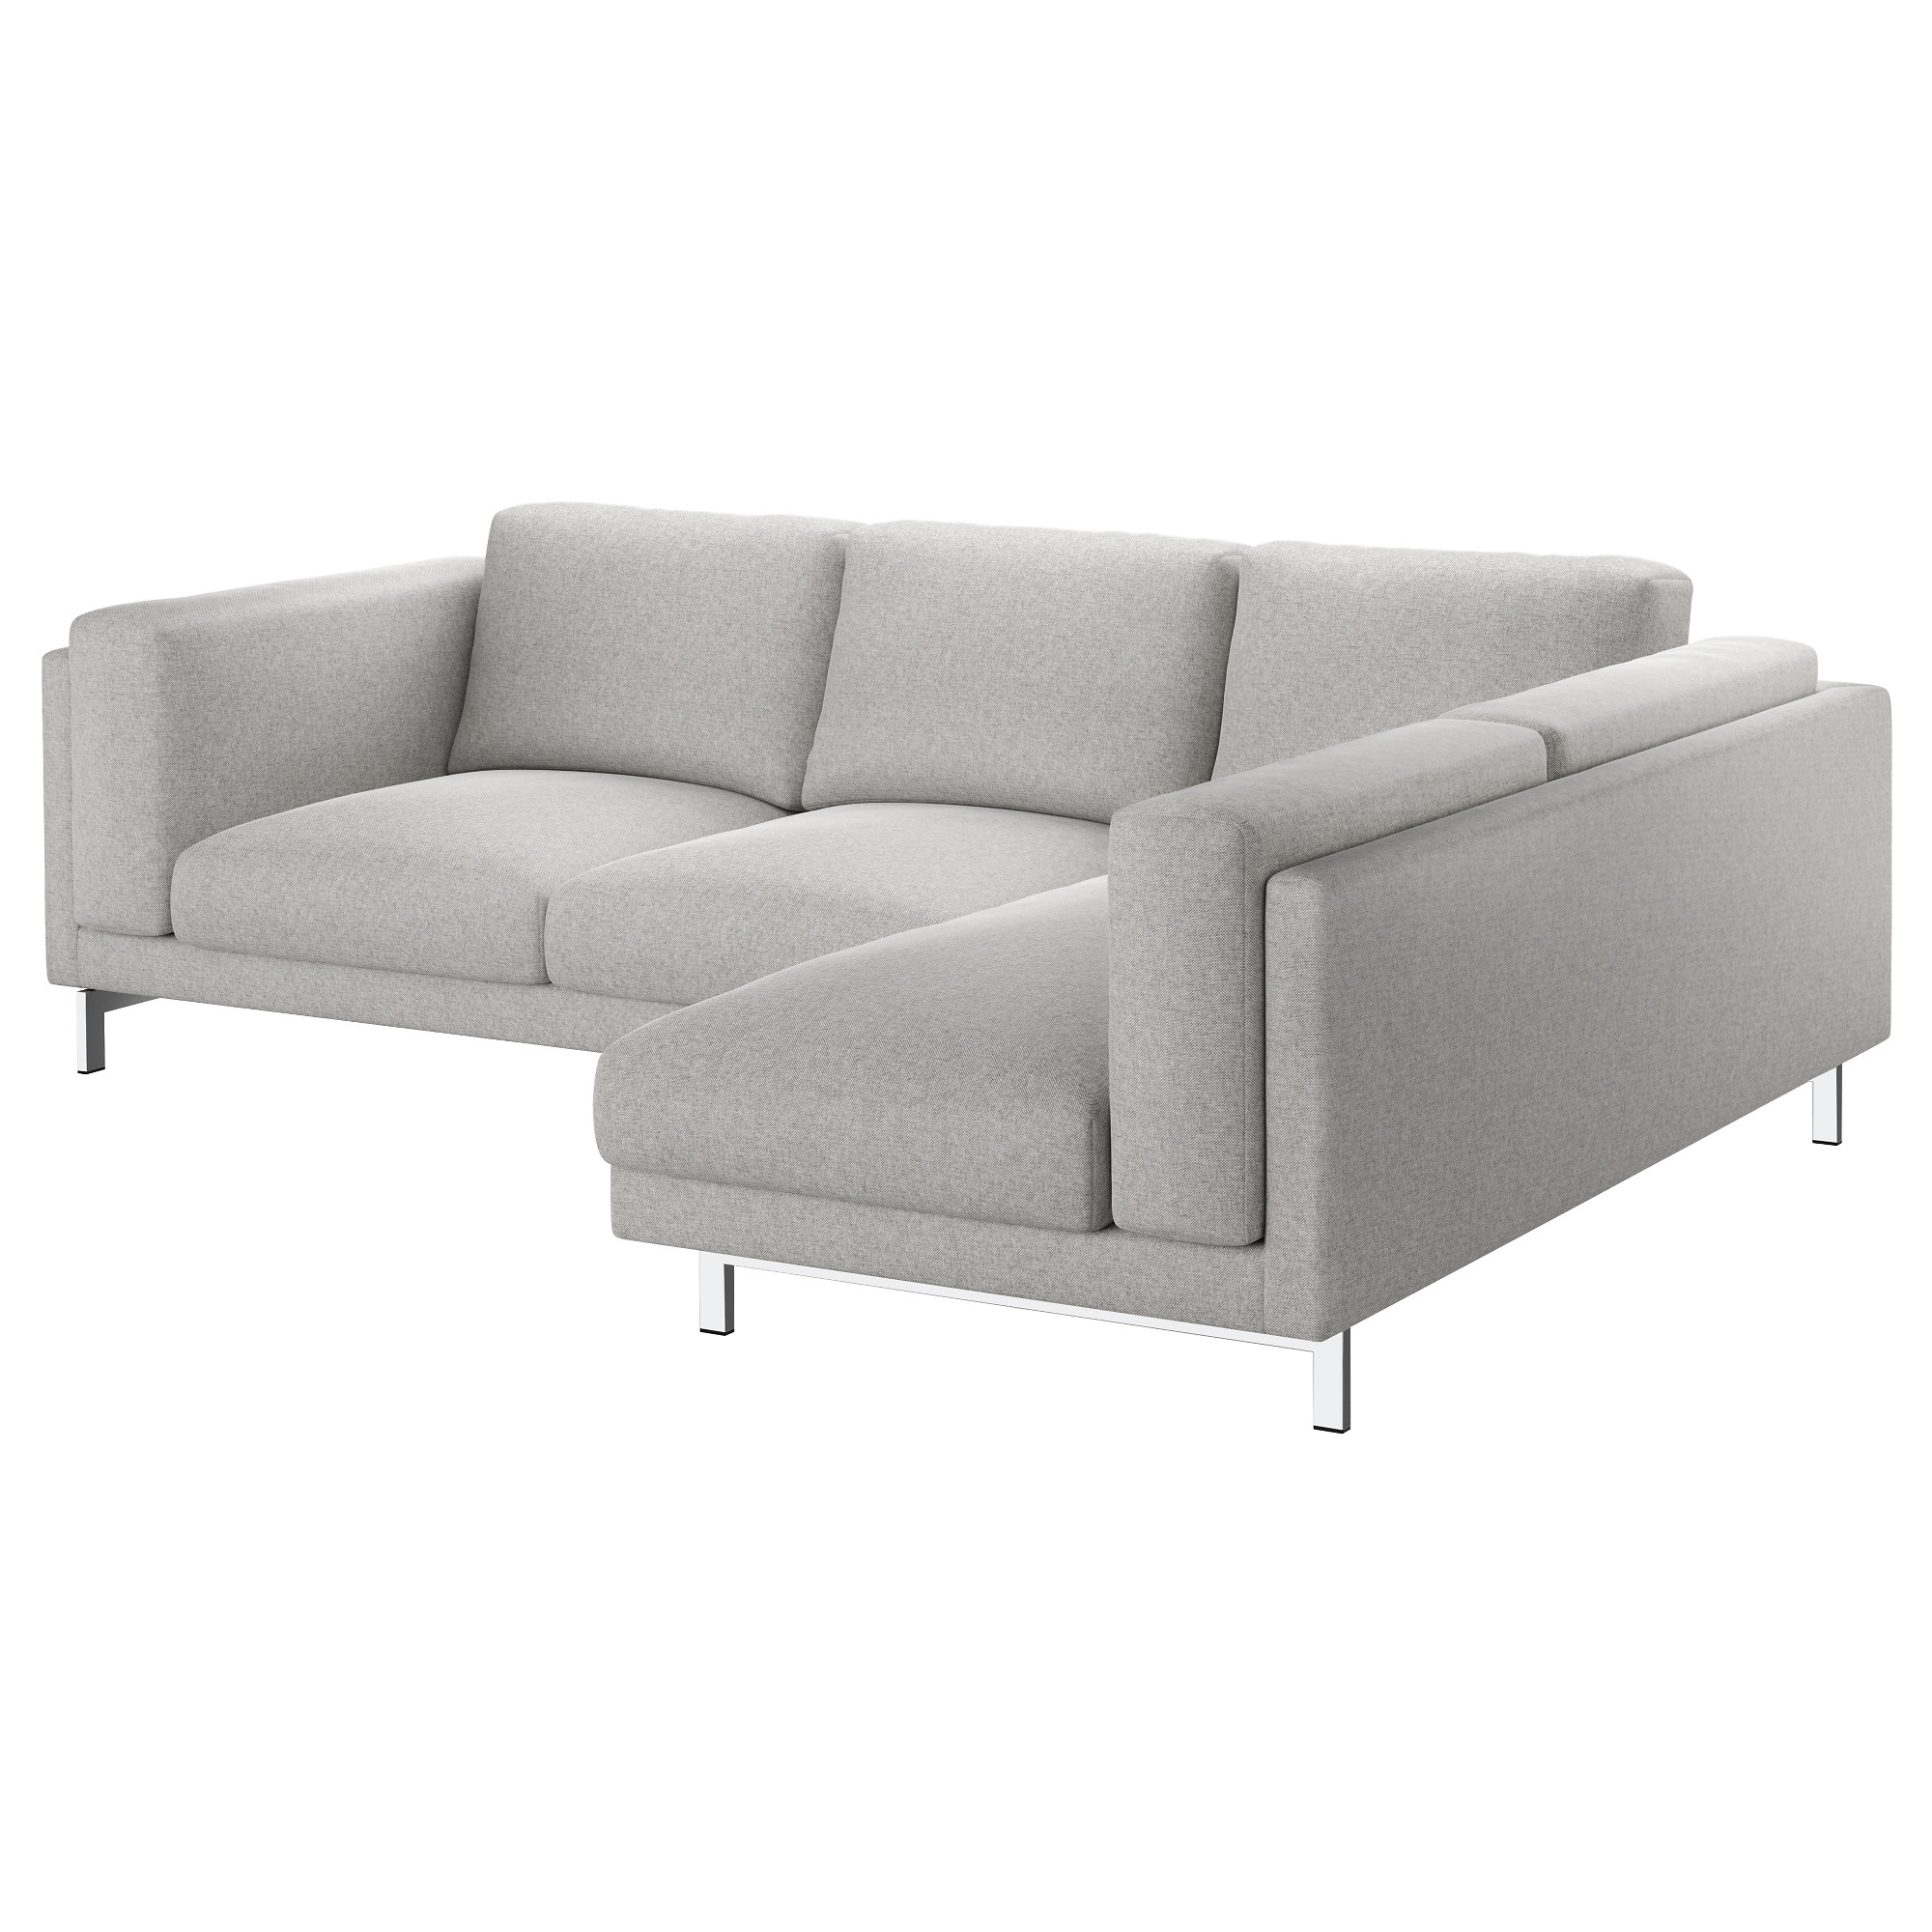 3 Seat Sofa Nockeby With Chaise Longue Right Tallmyra Chrome Plated White Black